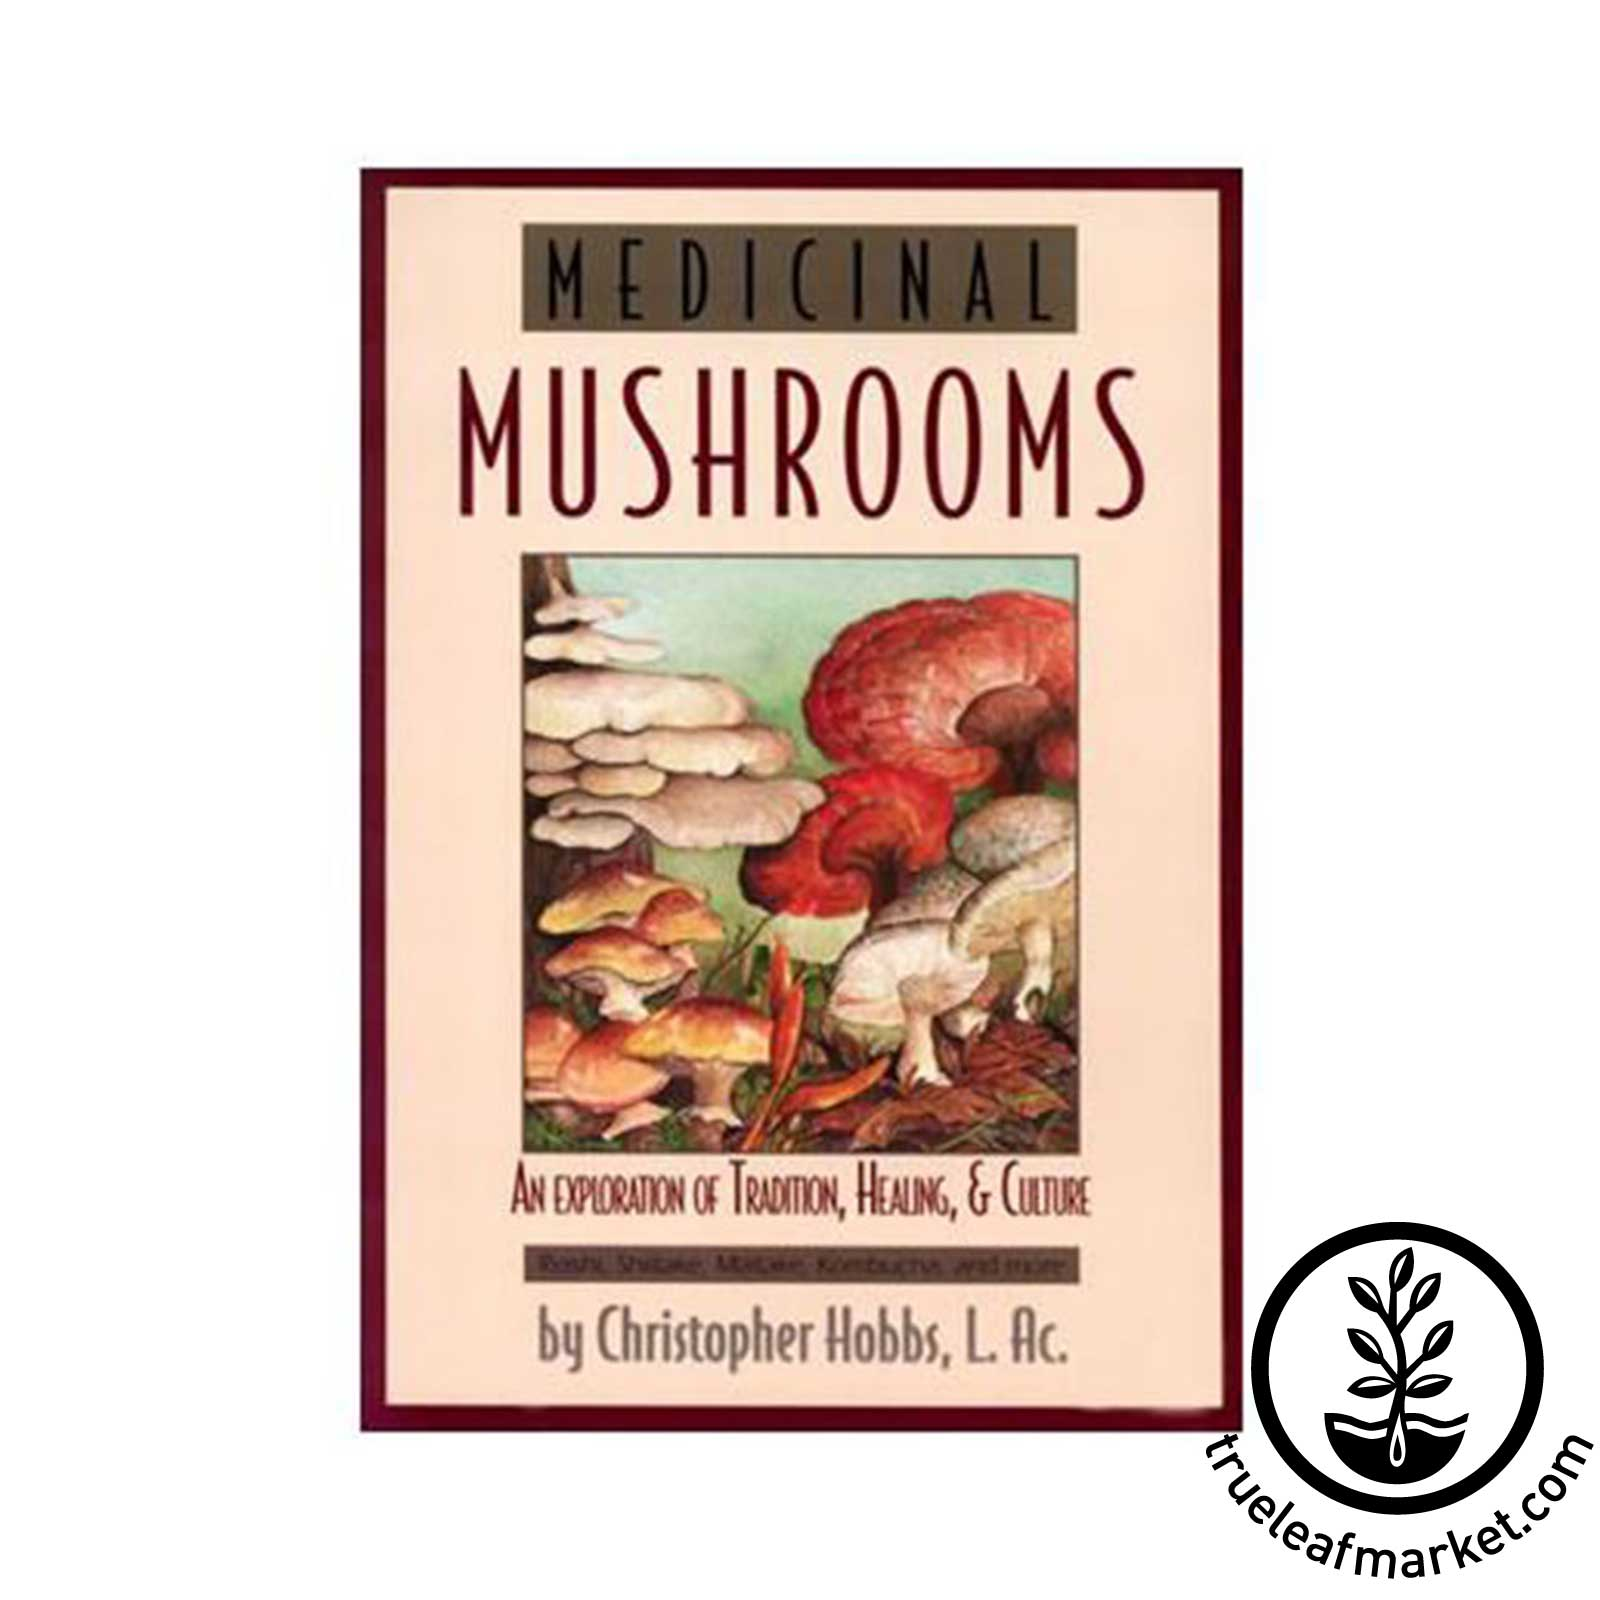 Medicinal Mushrooms Book by Christopher Hobbs mushroom book, medicinal mushrooms, edible fungi, mushroom health benefits